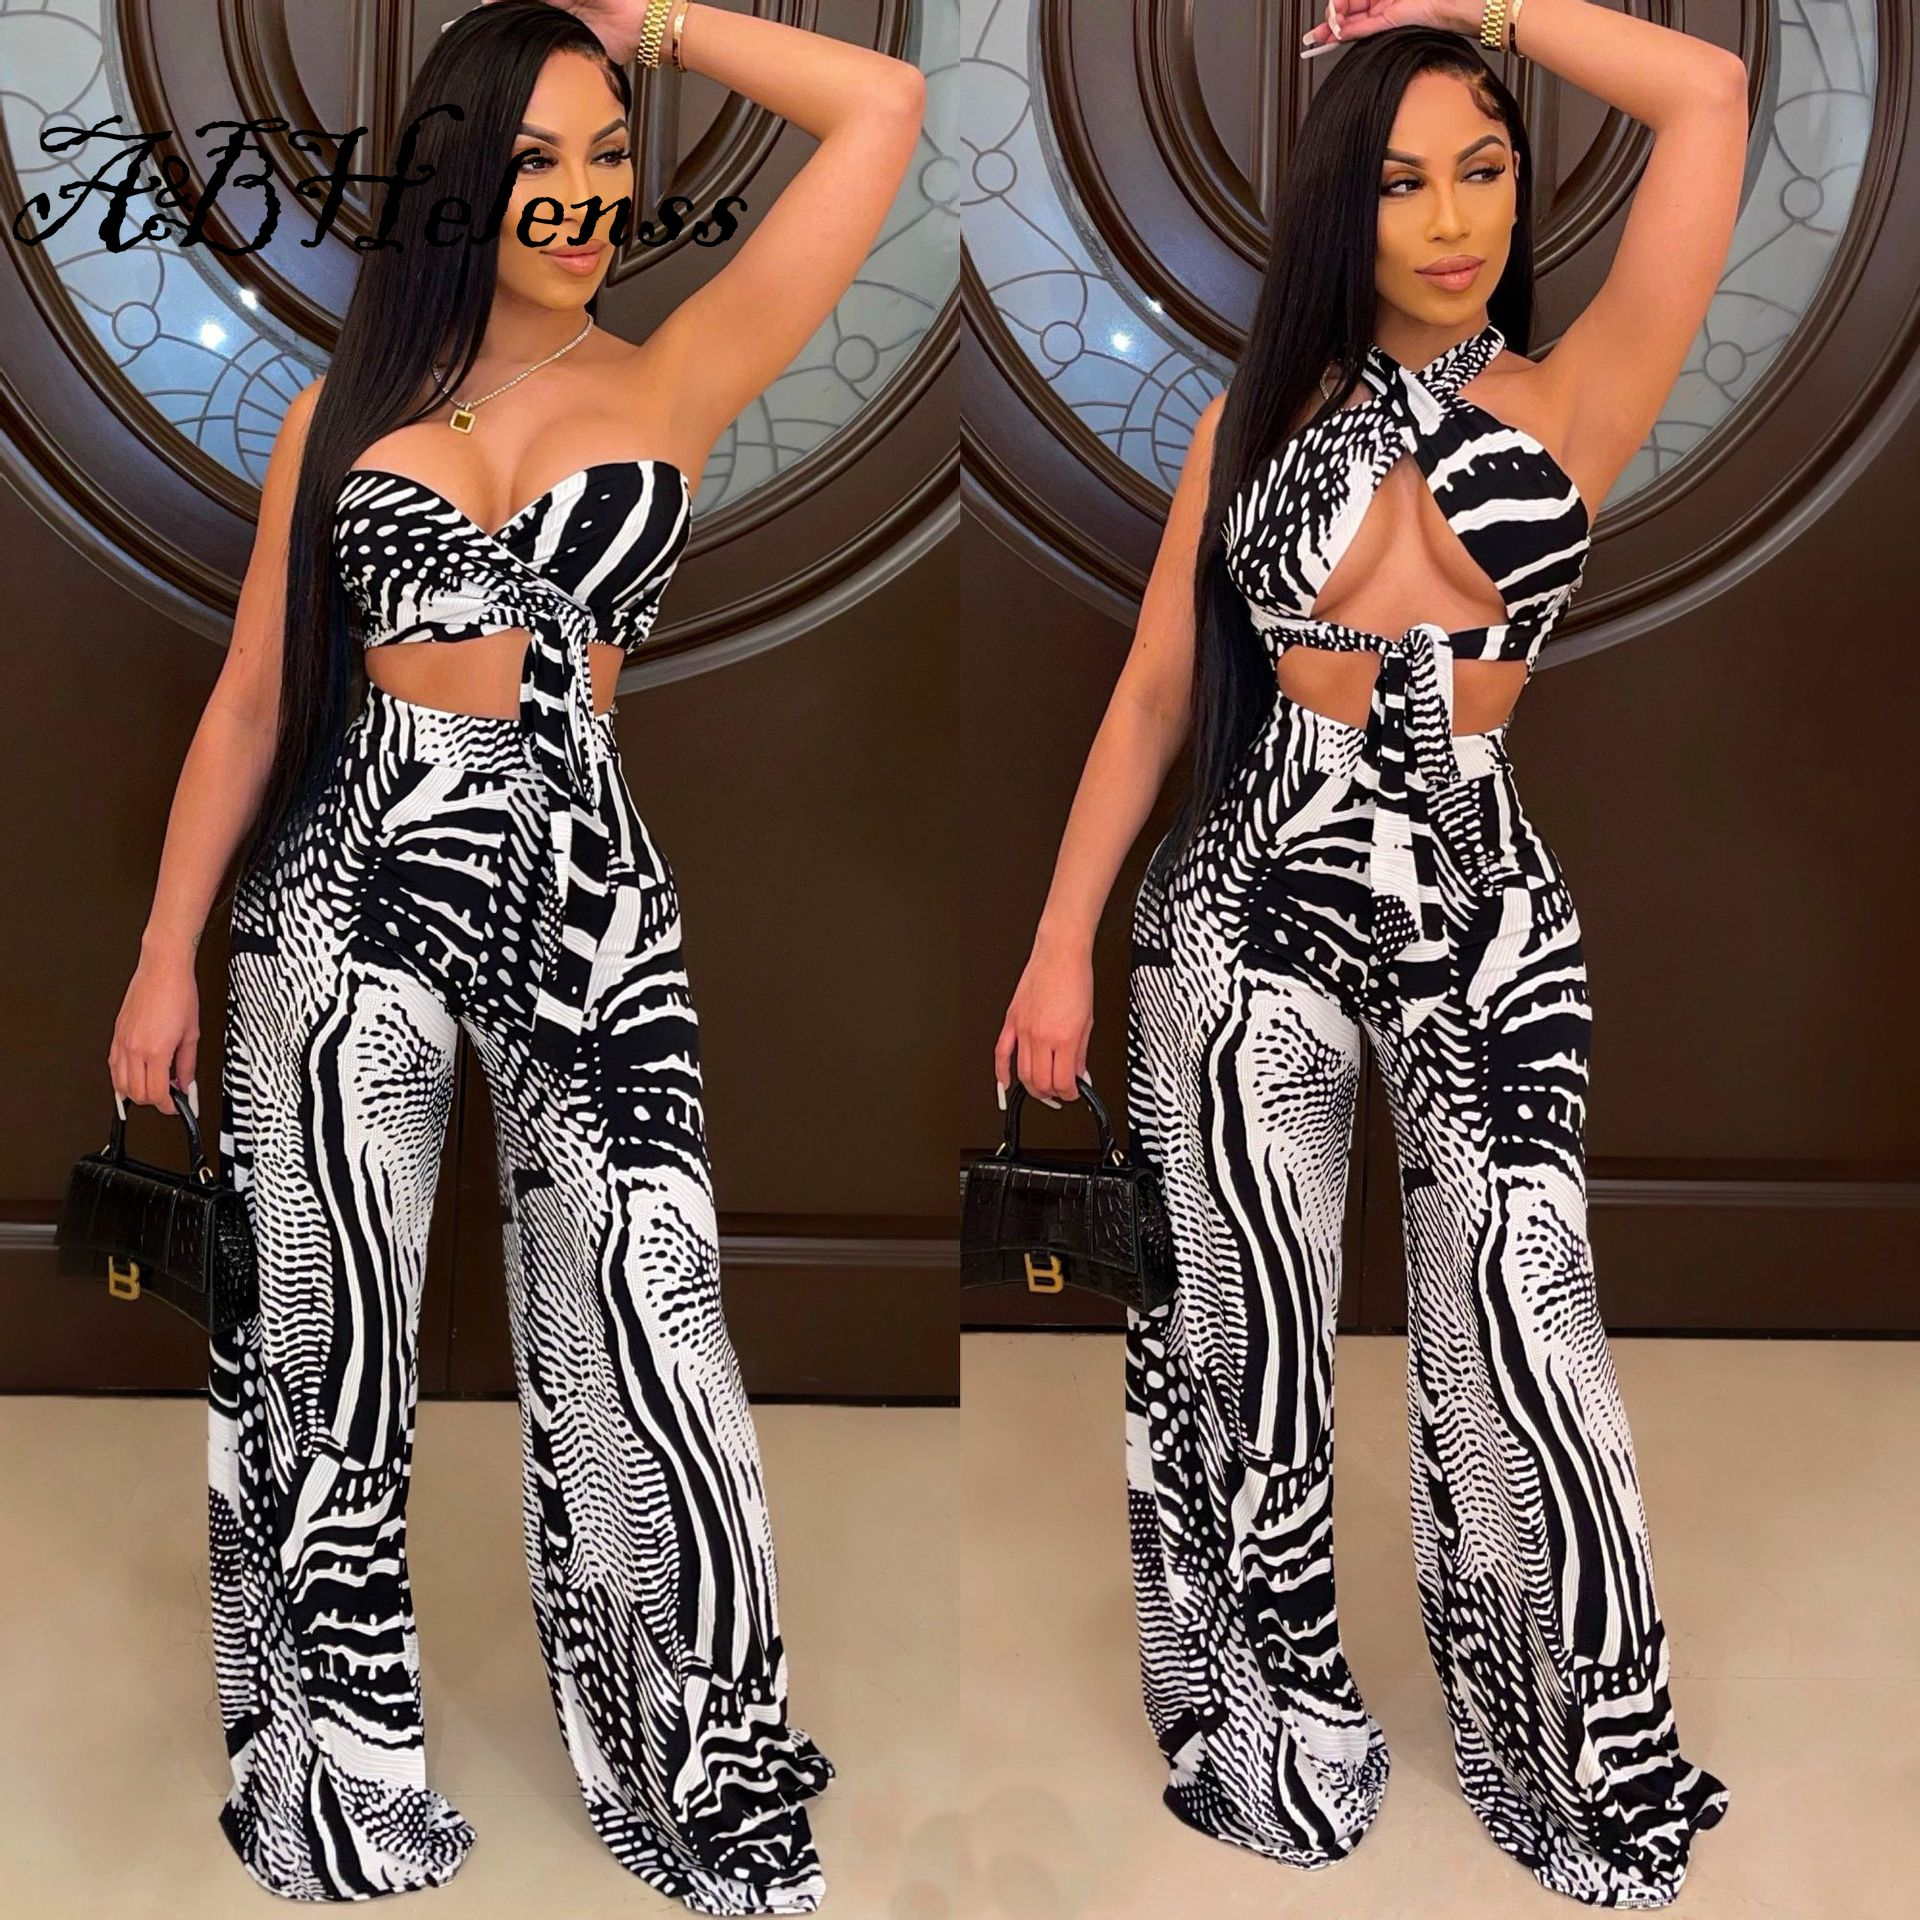 A&BHelenss Fashion Sleeveless Skinny Jumpsuits Young Party Lady Sexy Tight Club Party Lady Fashion B